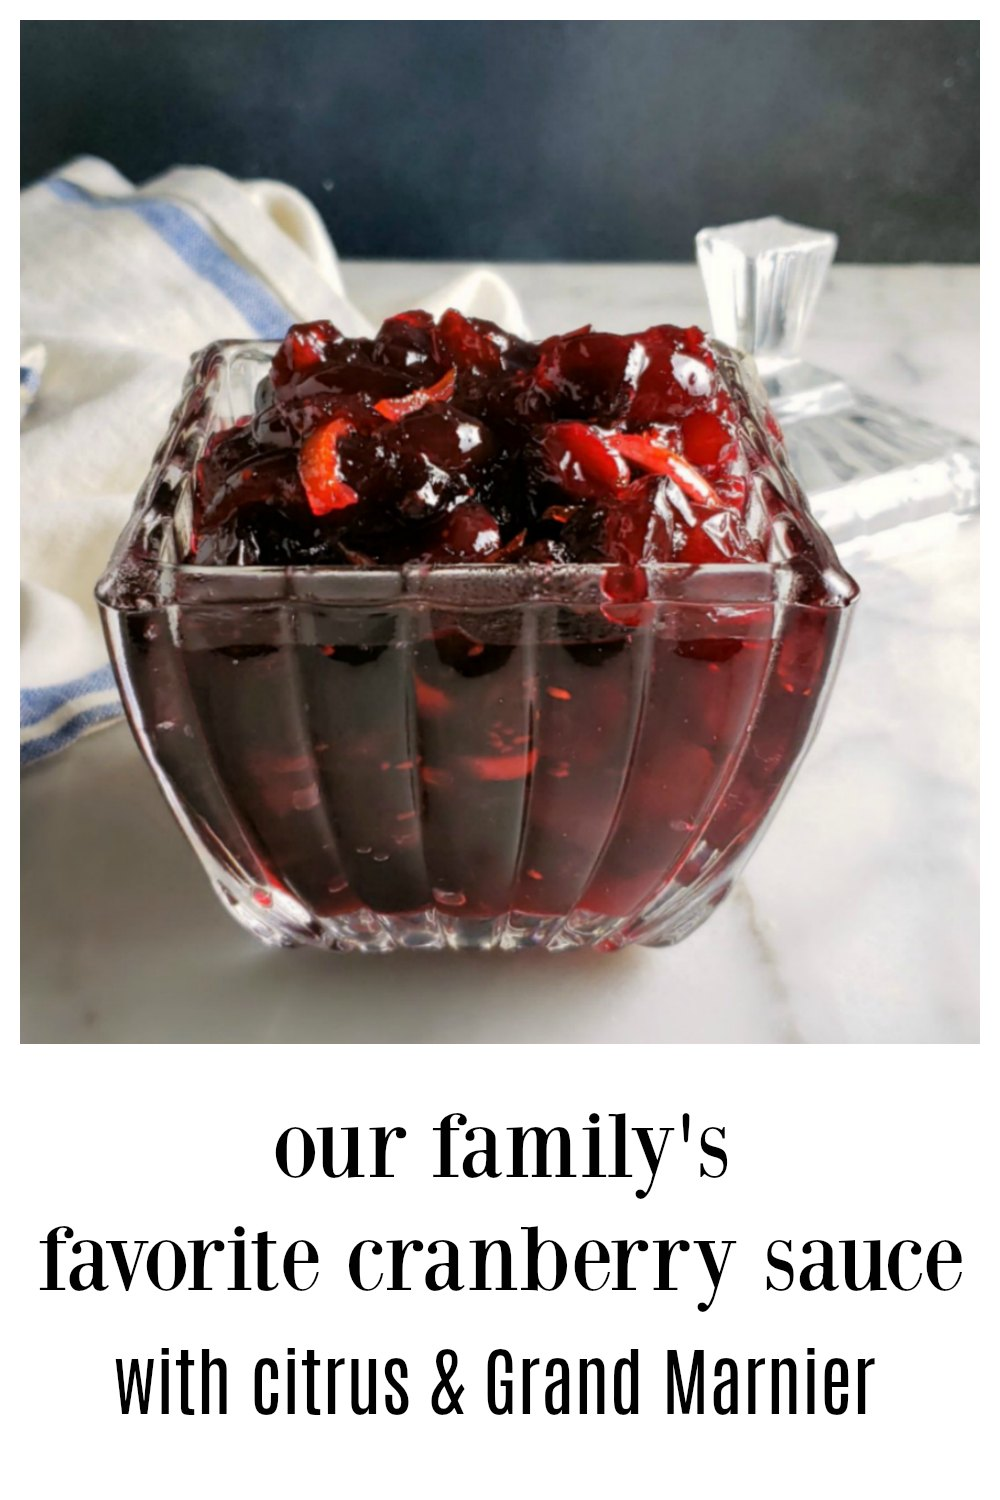 There is such a thing as a game-changing cranberry sauce and our Favorite Cranberry Sauce with Grand Marnier and stips of candy-like citrus is it! You can go non-alcohol if you wish. It's baked in the oven, hands-off, no effort, no standing at the stove and no sputtering and mess! #GrandMarnierCranberrySauce #BestCranberrySauce #CranberrySauce